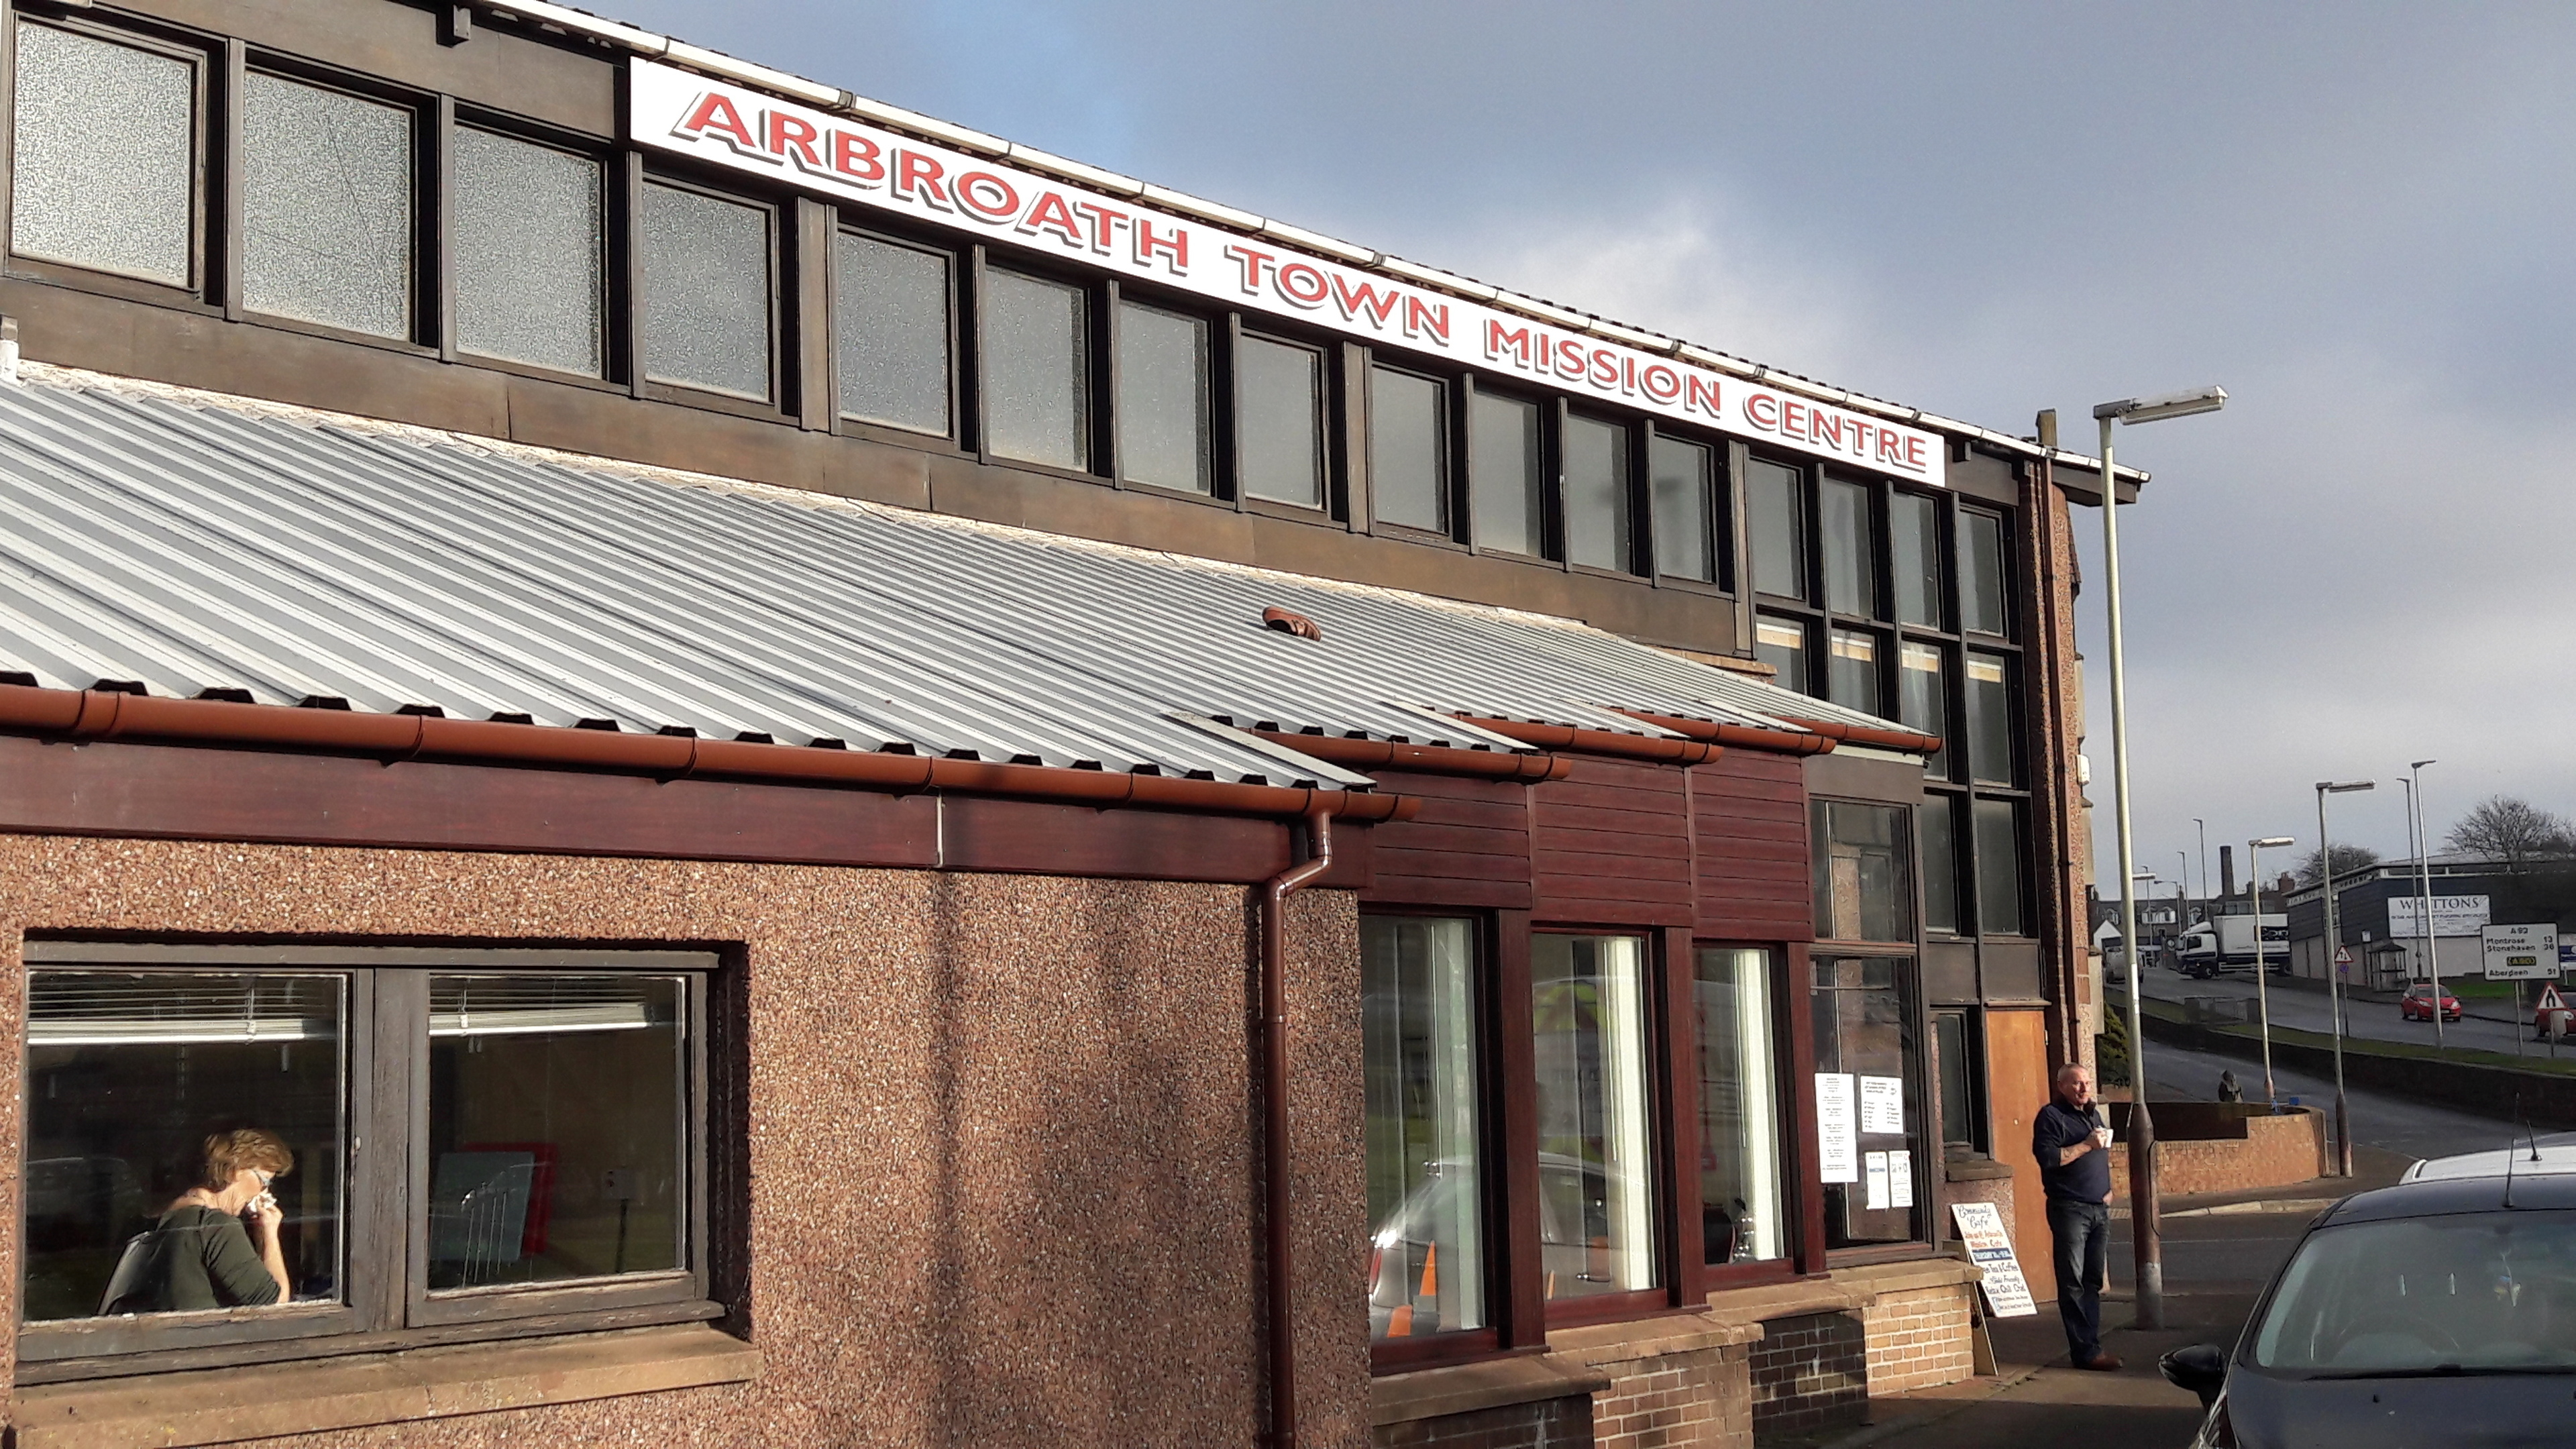 Arbroath Town Mission